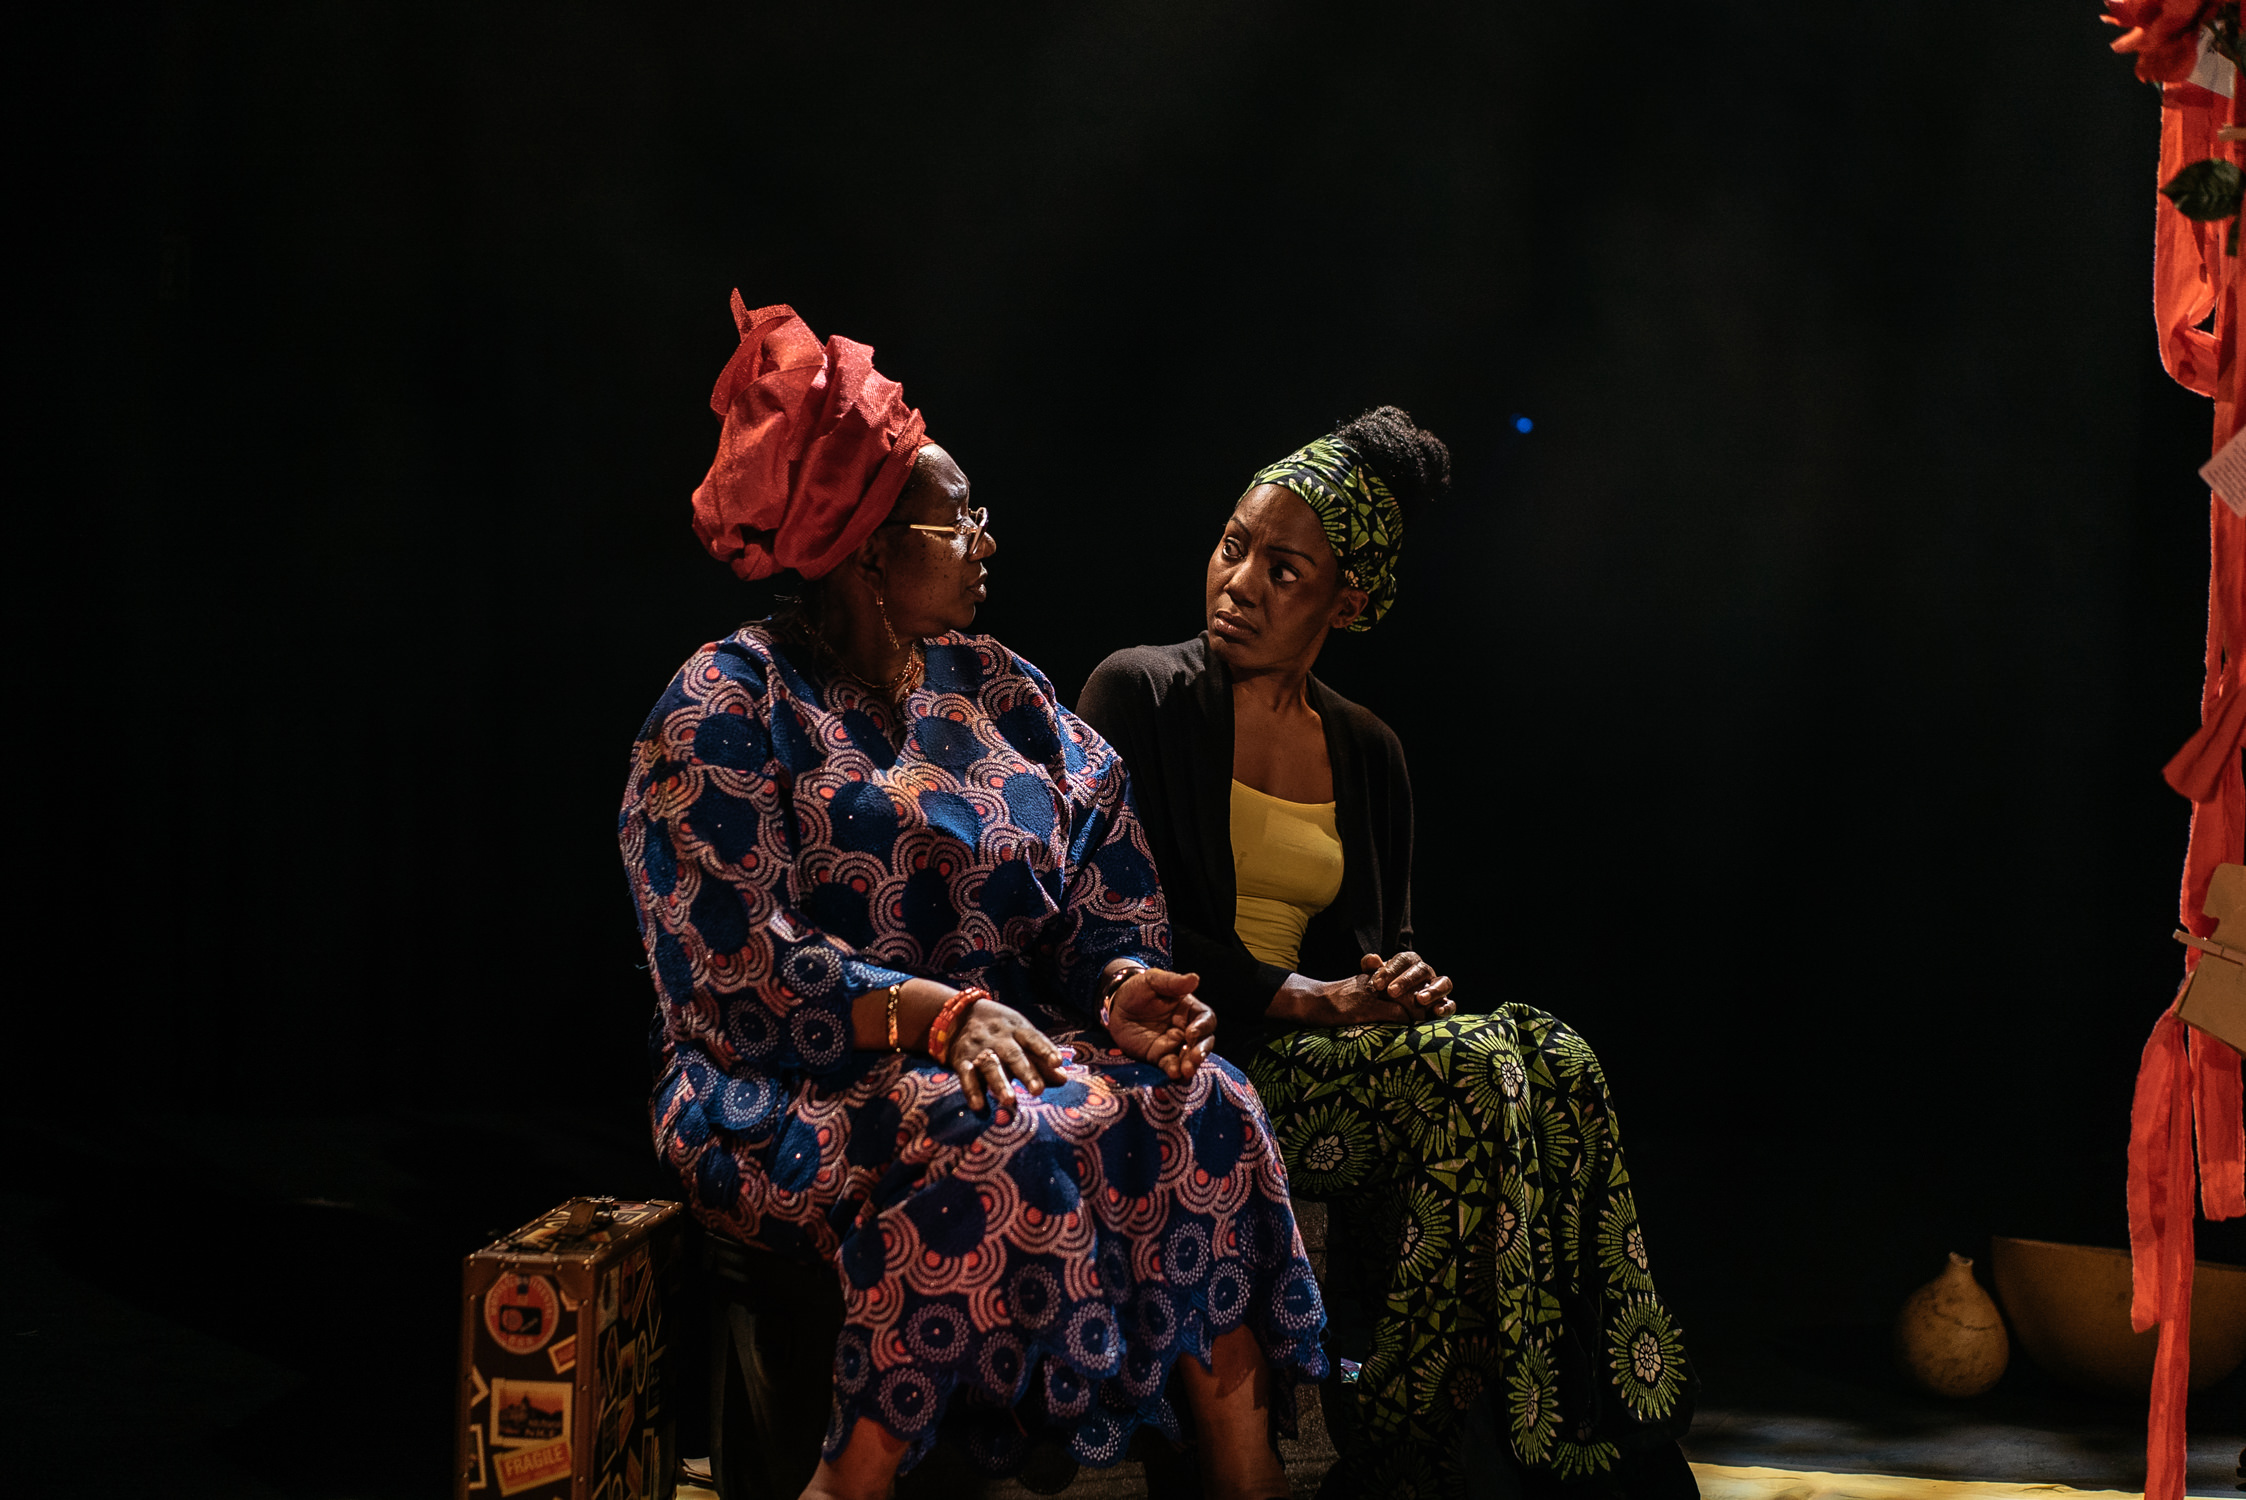 SHADOWS IN DIFFERENT SHADES - By Oladipo Agboluaje |From An Original Concept Inspired And Directed By Moji Kareem |Original Music And Lyrics Composed And Directed By Juwon Ogungbe